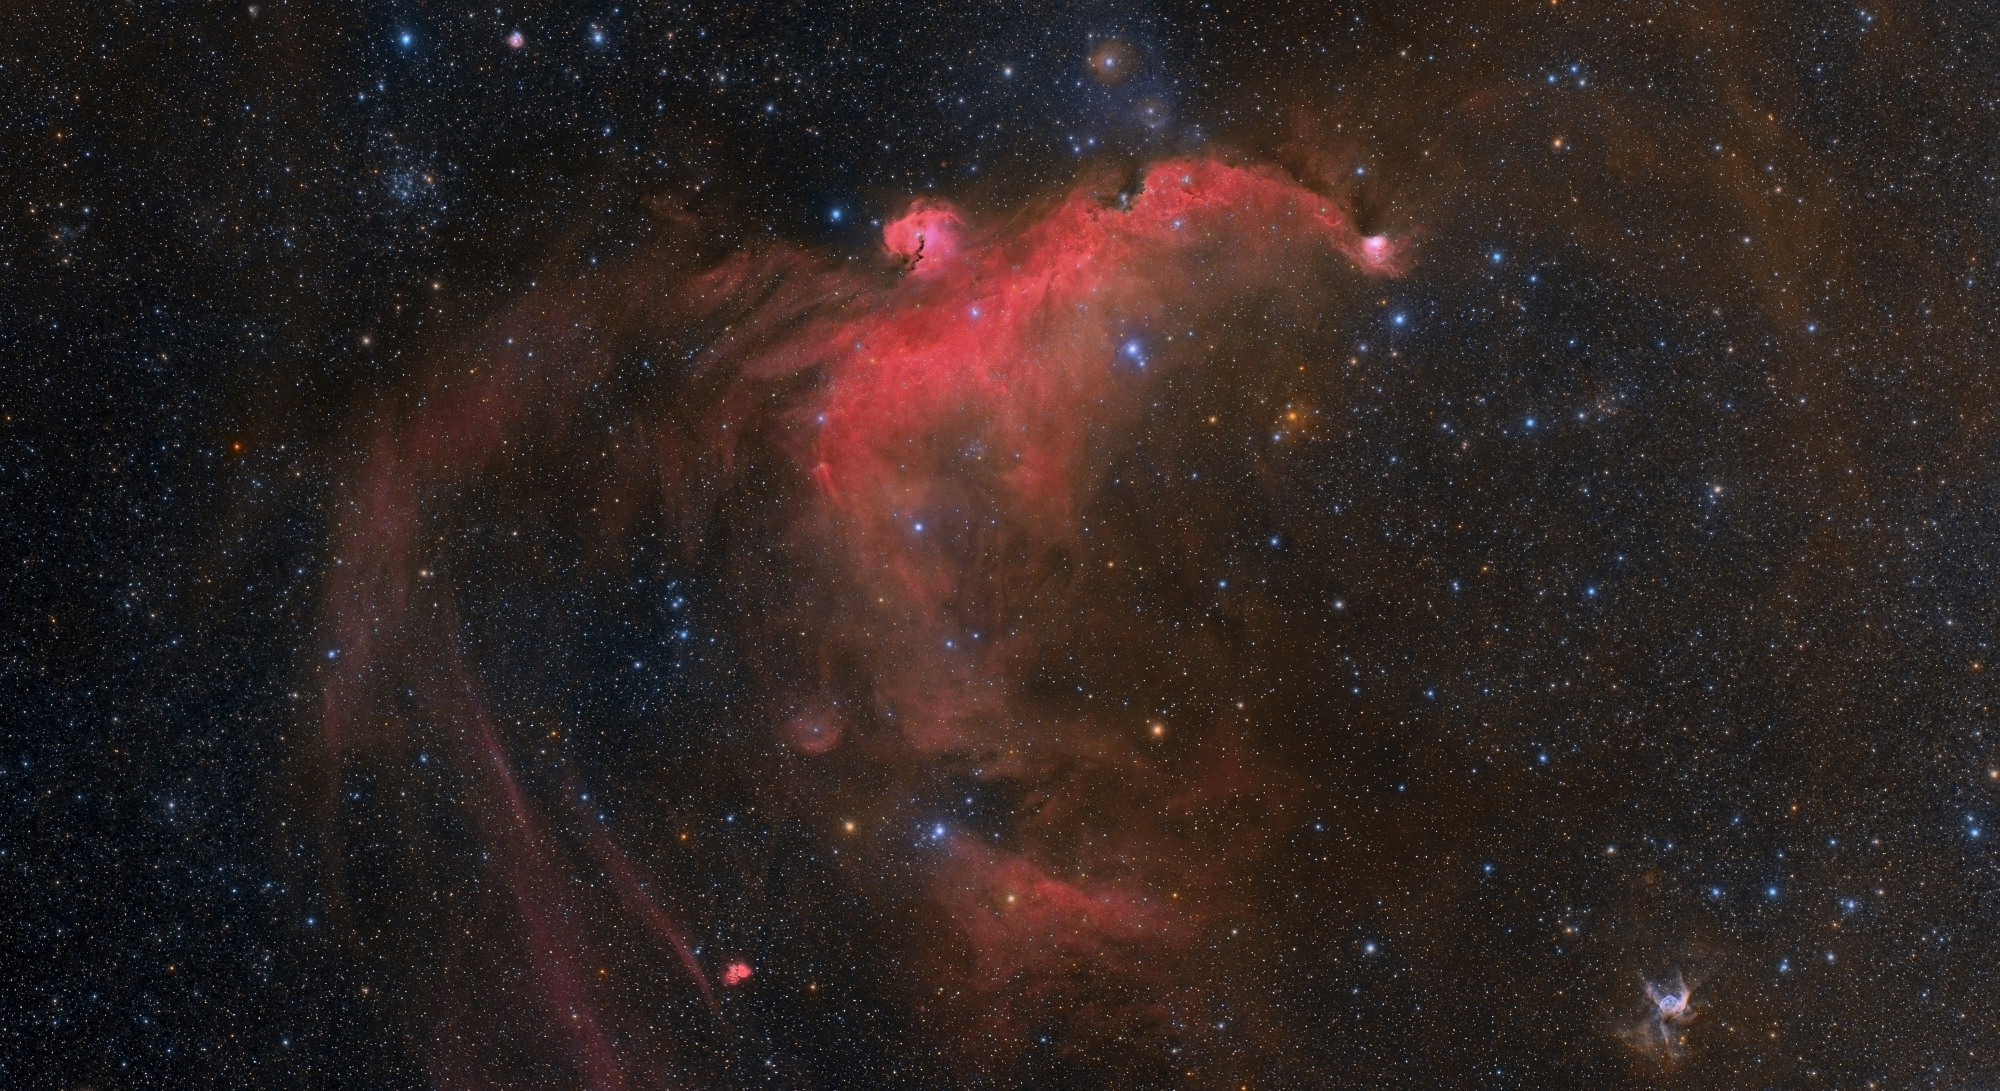 The Stellar Gull by Raul Villaverde Fraile   Insight Investment Astronomy Photographer of the Year 2019   Stars and Nebulae